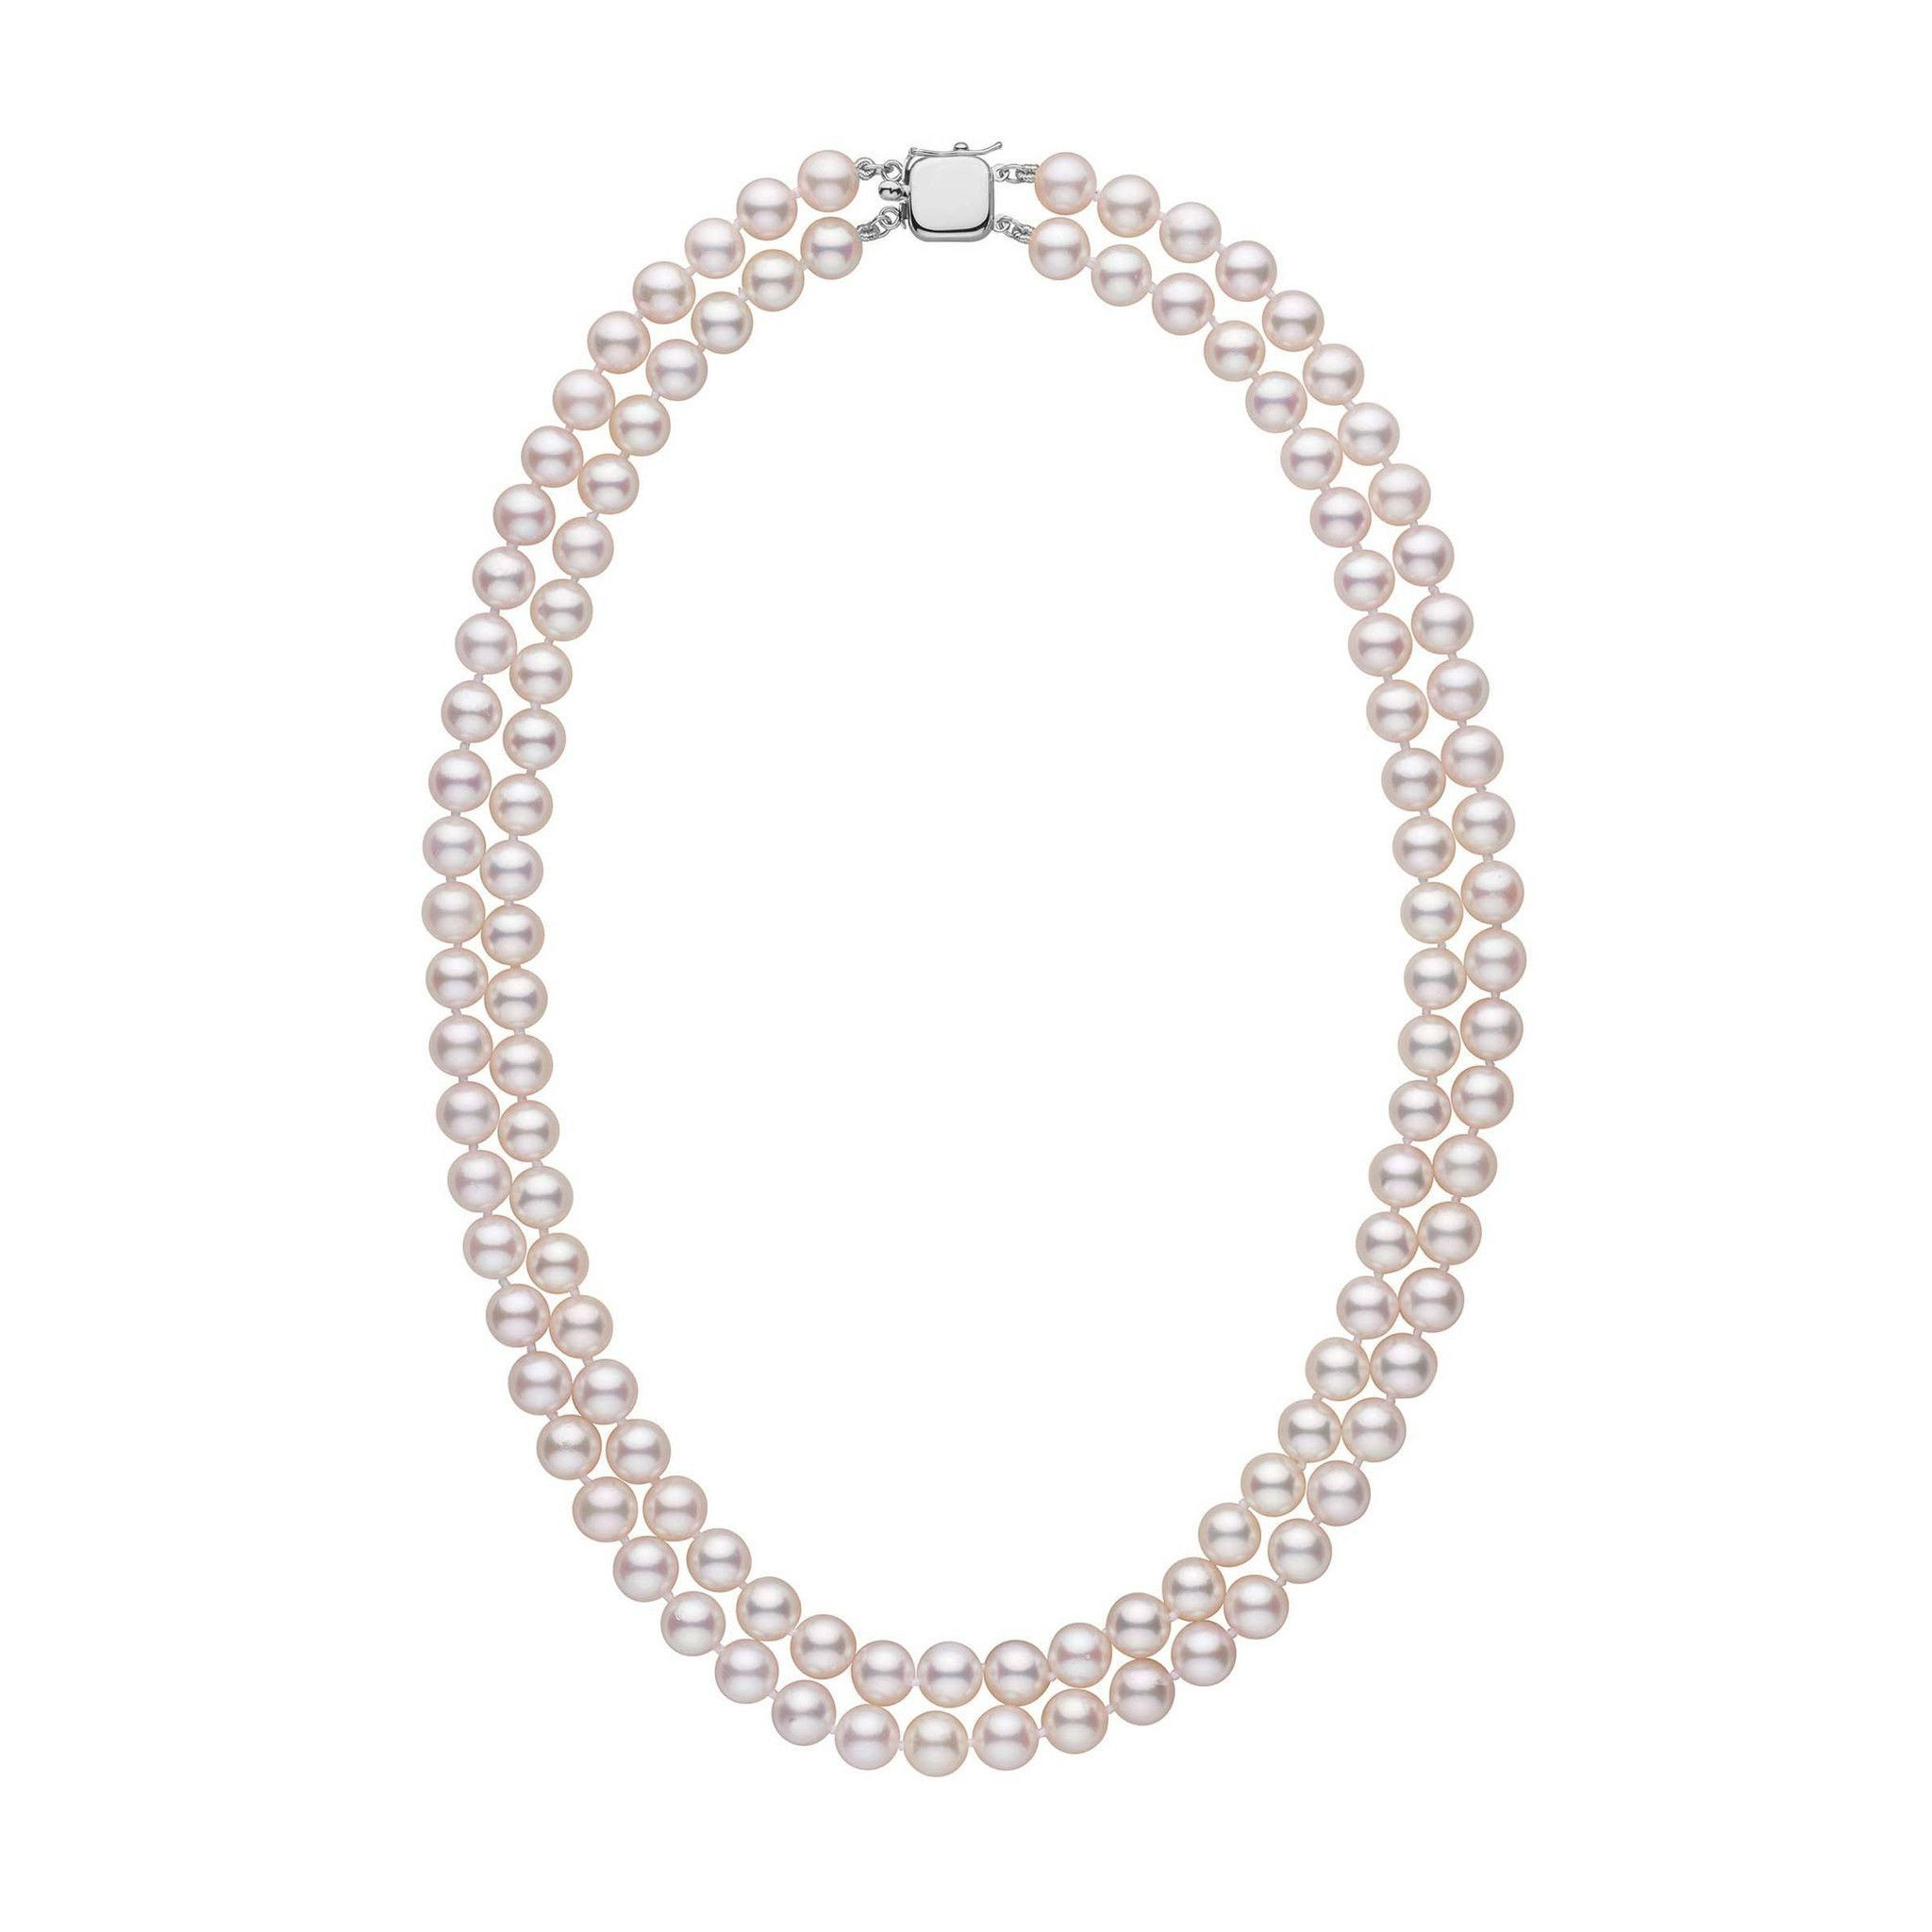 6.5-7.0 mm 18-inch Double-Strand White Akoya AAA Pearl Necklace